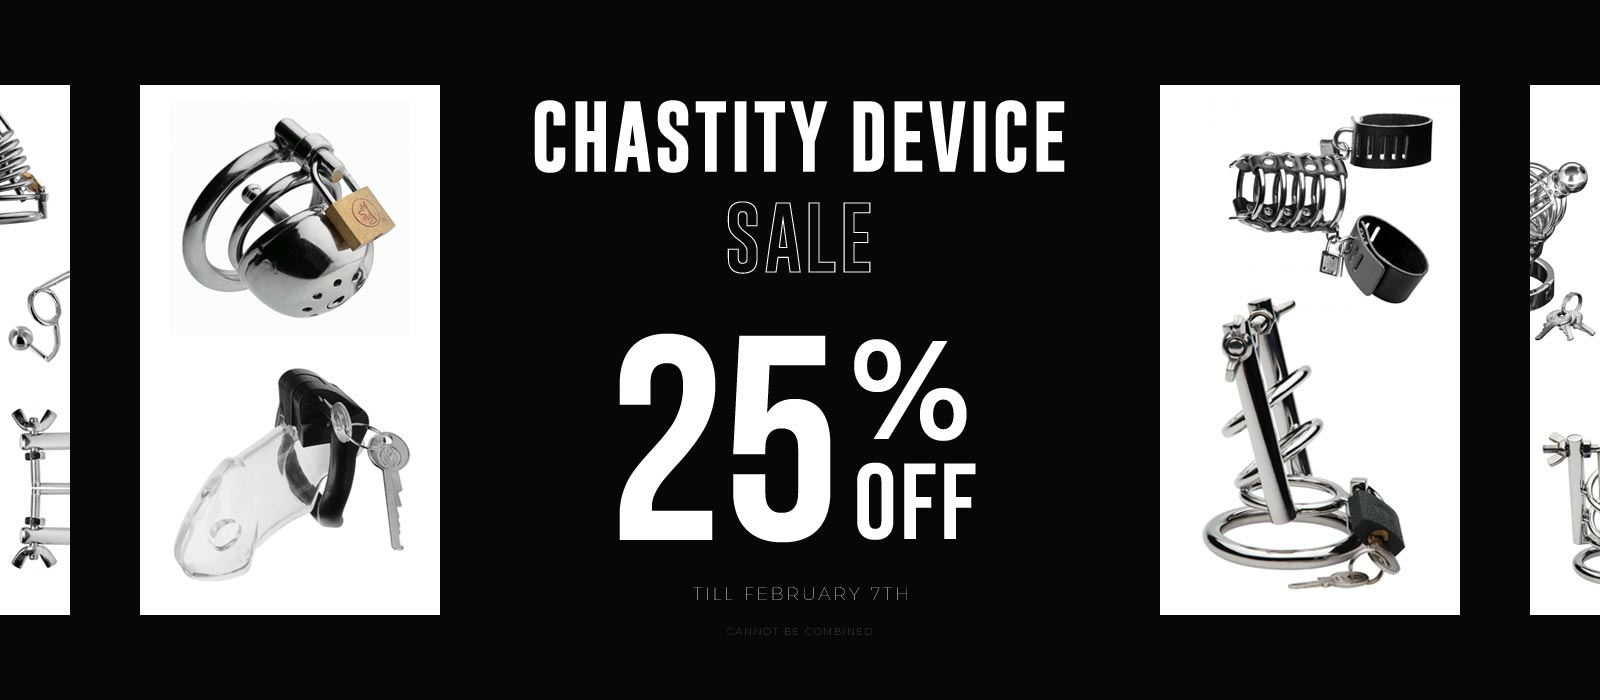 Chastity Device Sale 25% off